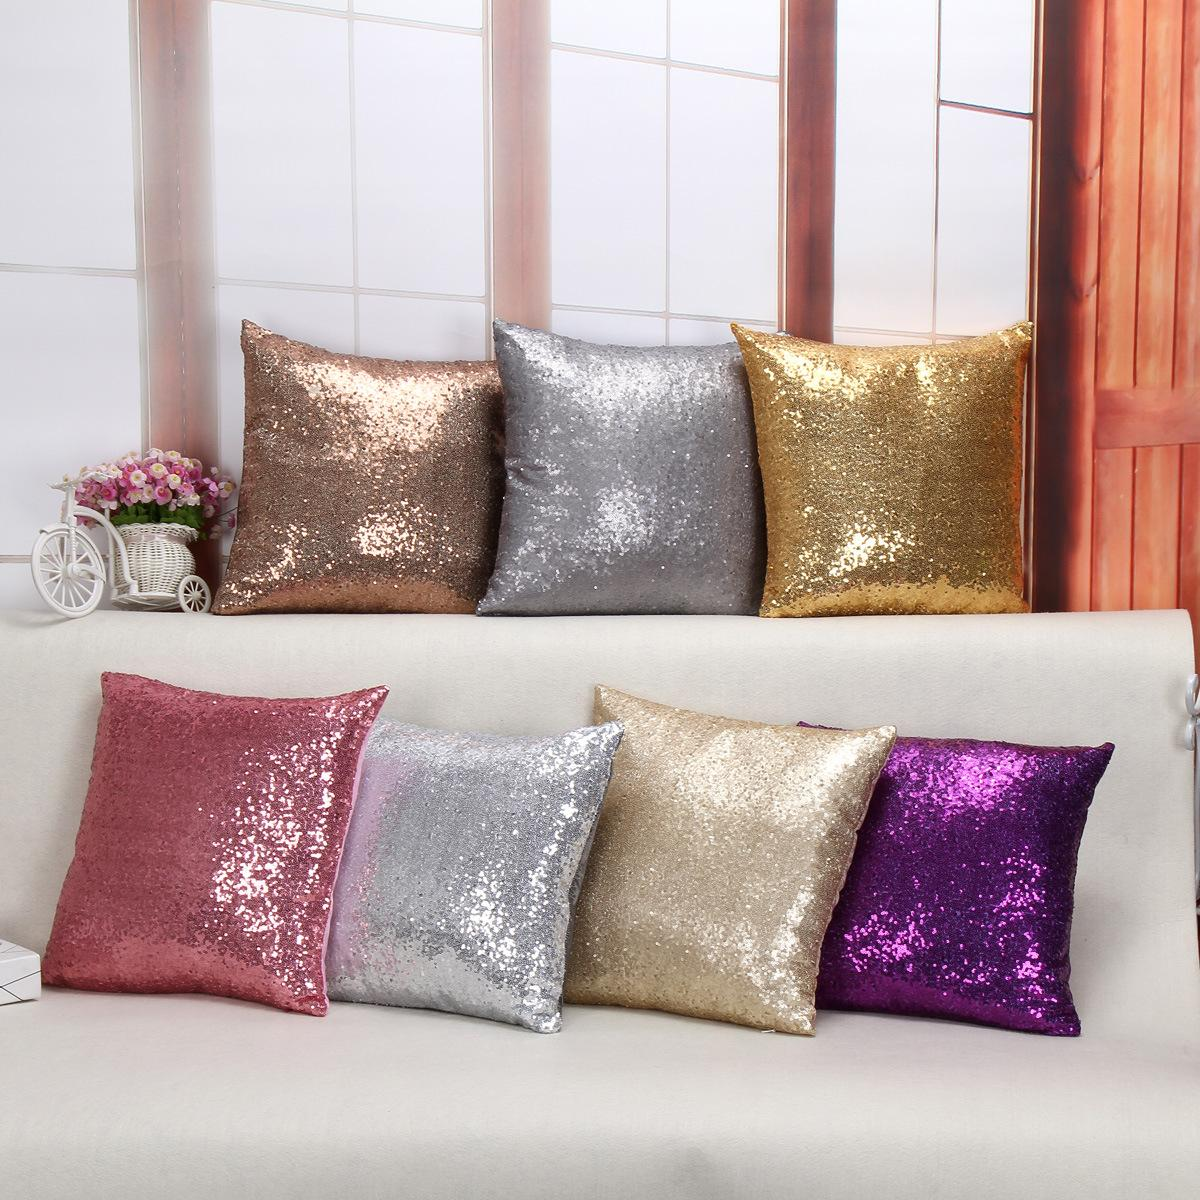 Christmas Home Decor Fashion Luxury 40 40cm Sequin Cushion Cover Multicolors Sparkling Square Pillow Cover Home Textile Sofa Decor